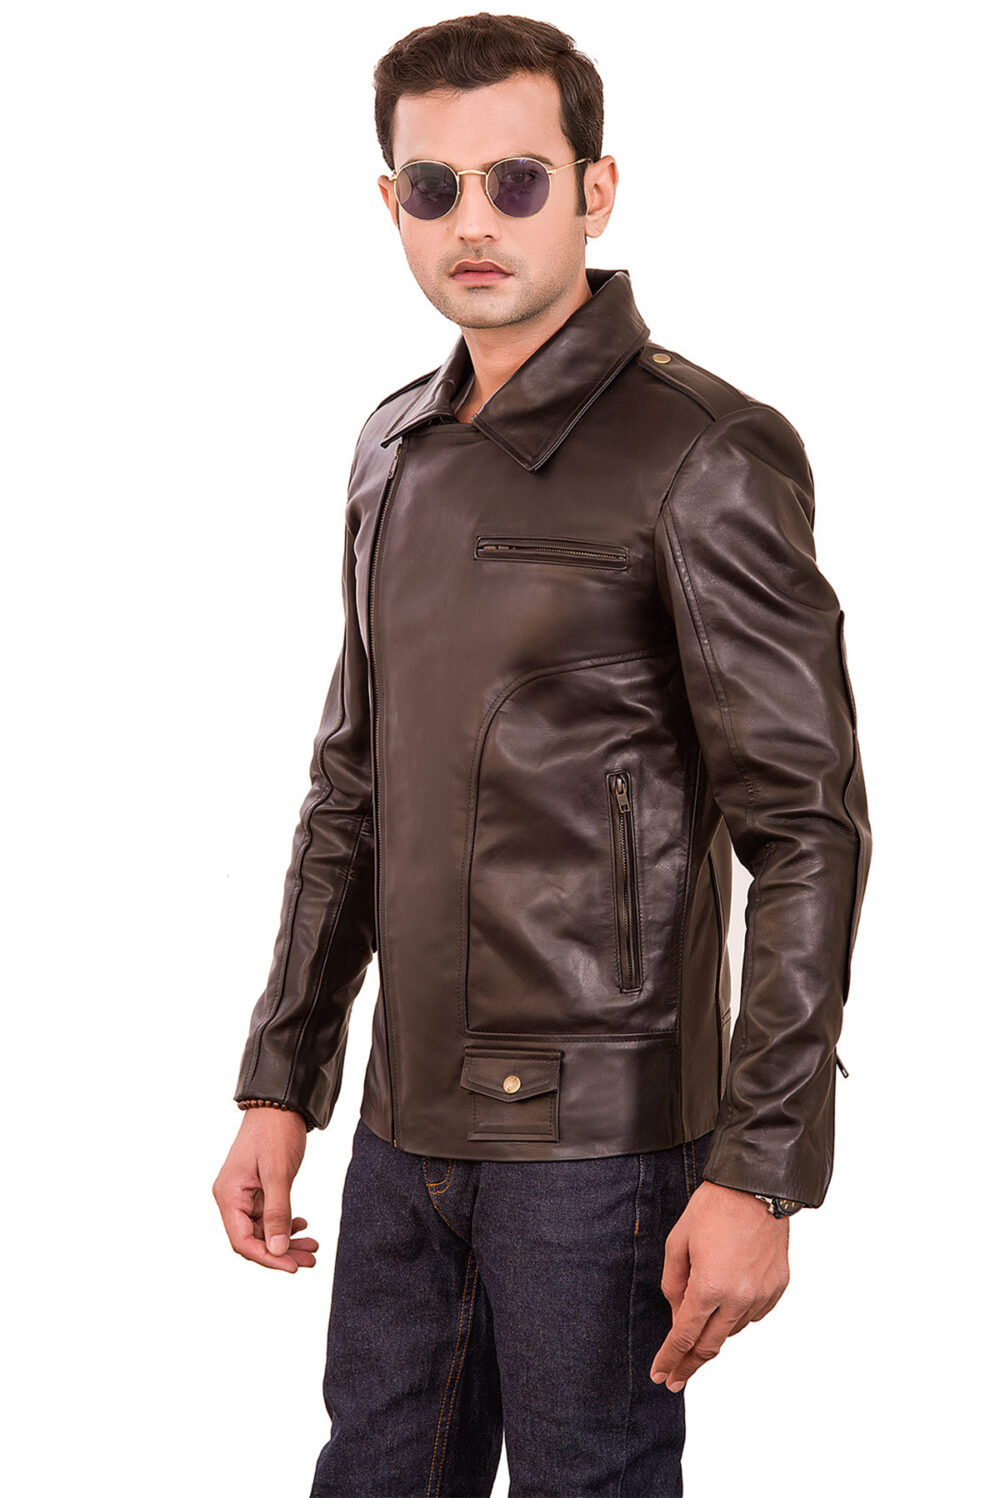 dark brown leather jacket outfit men's